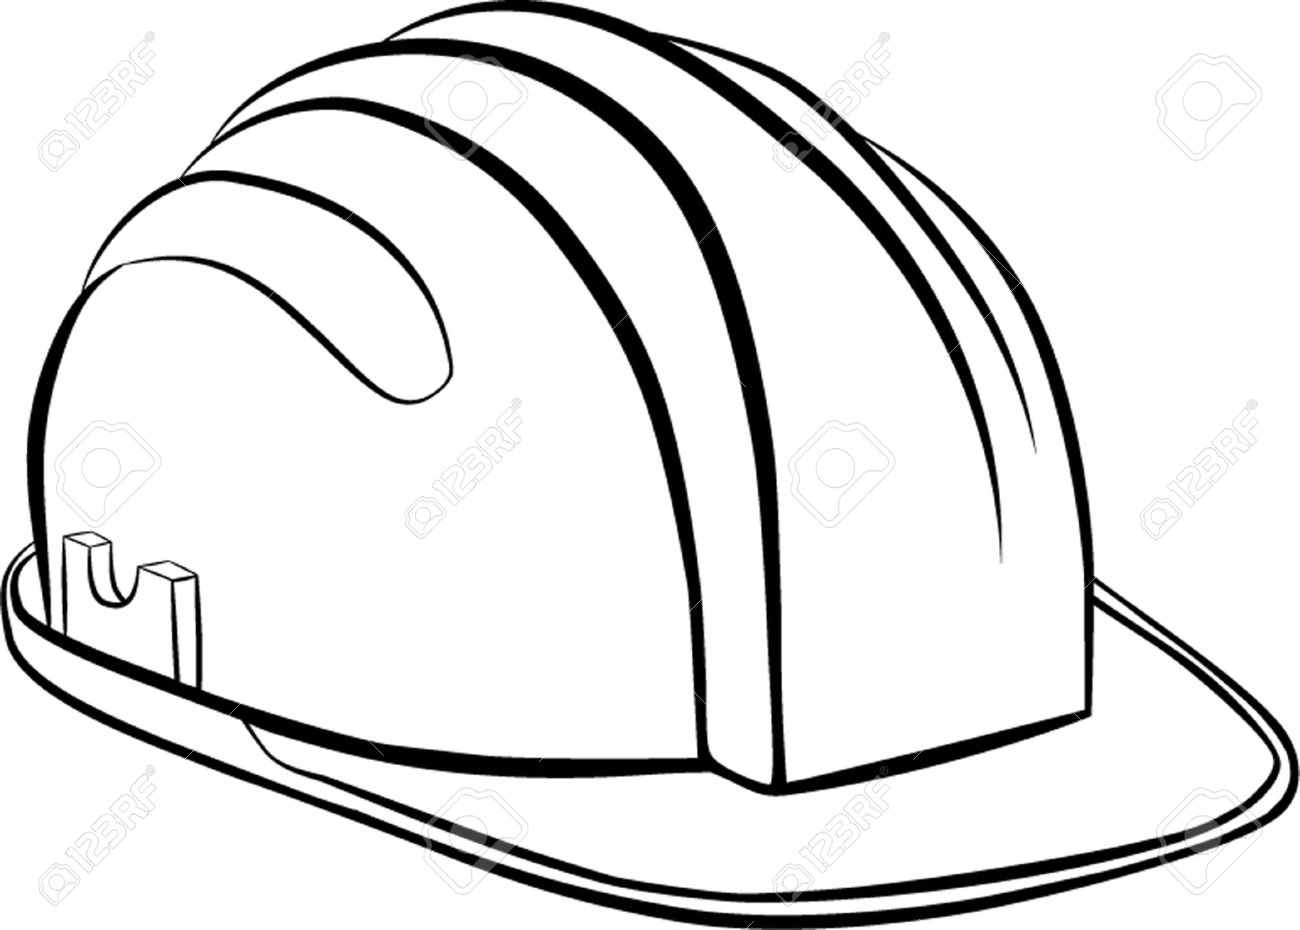 1300x930 Hard Hat Stock Photos. Royalty Free Business Images